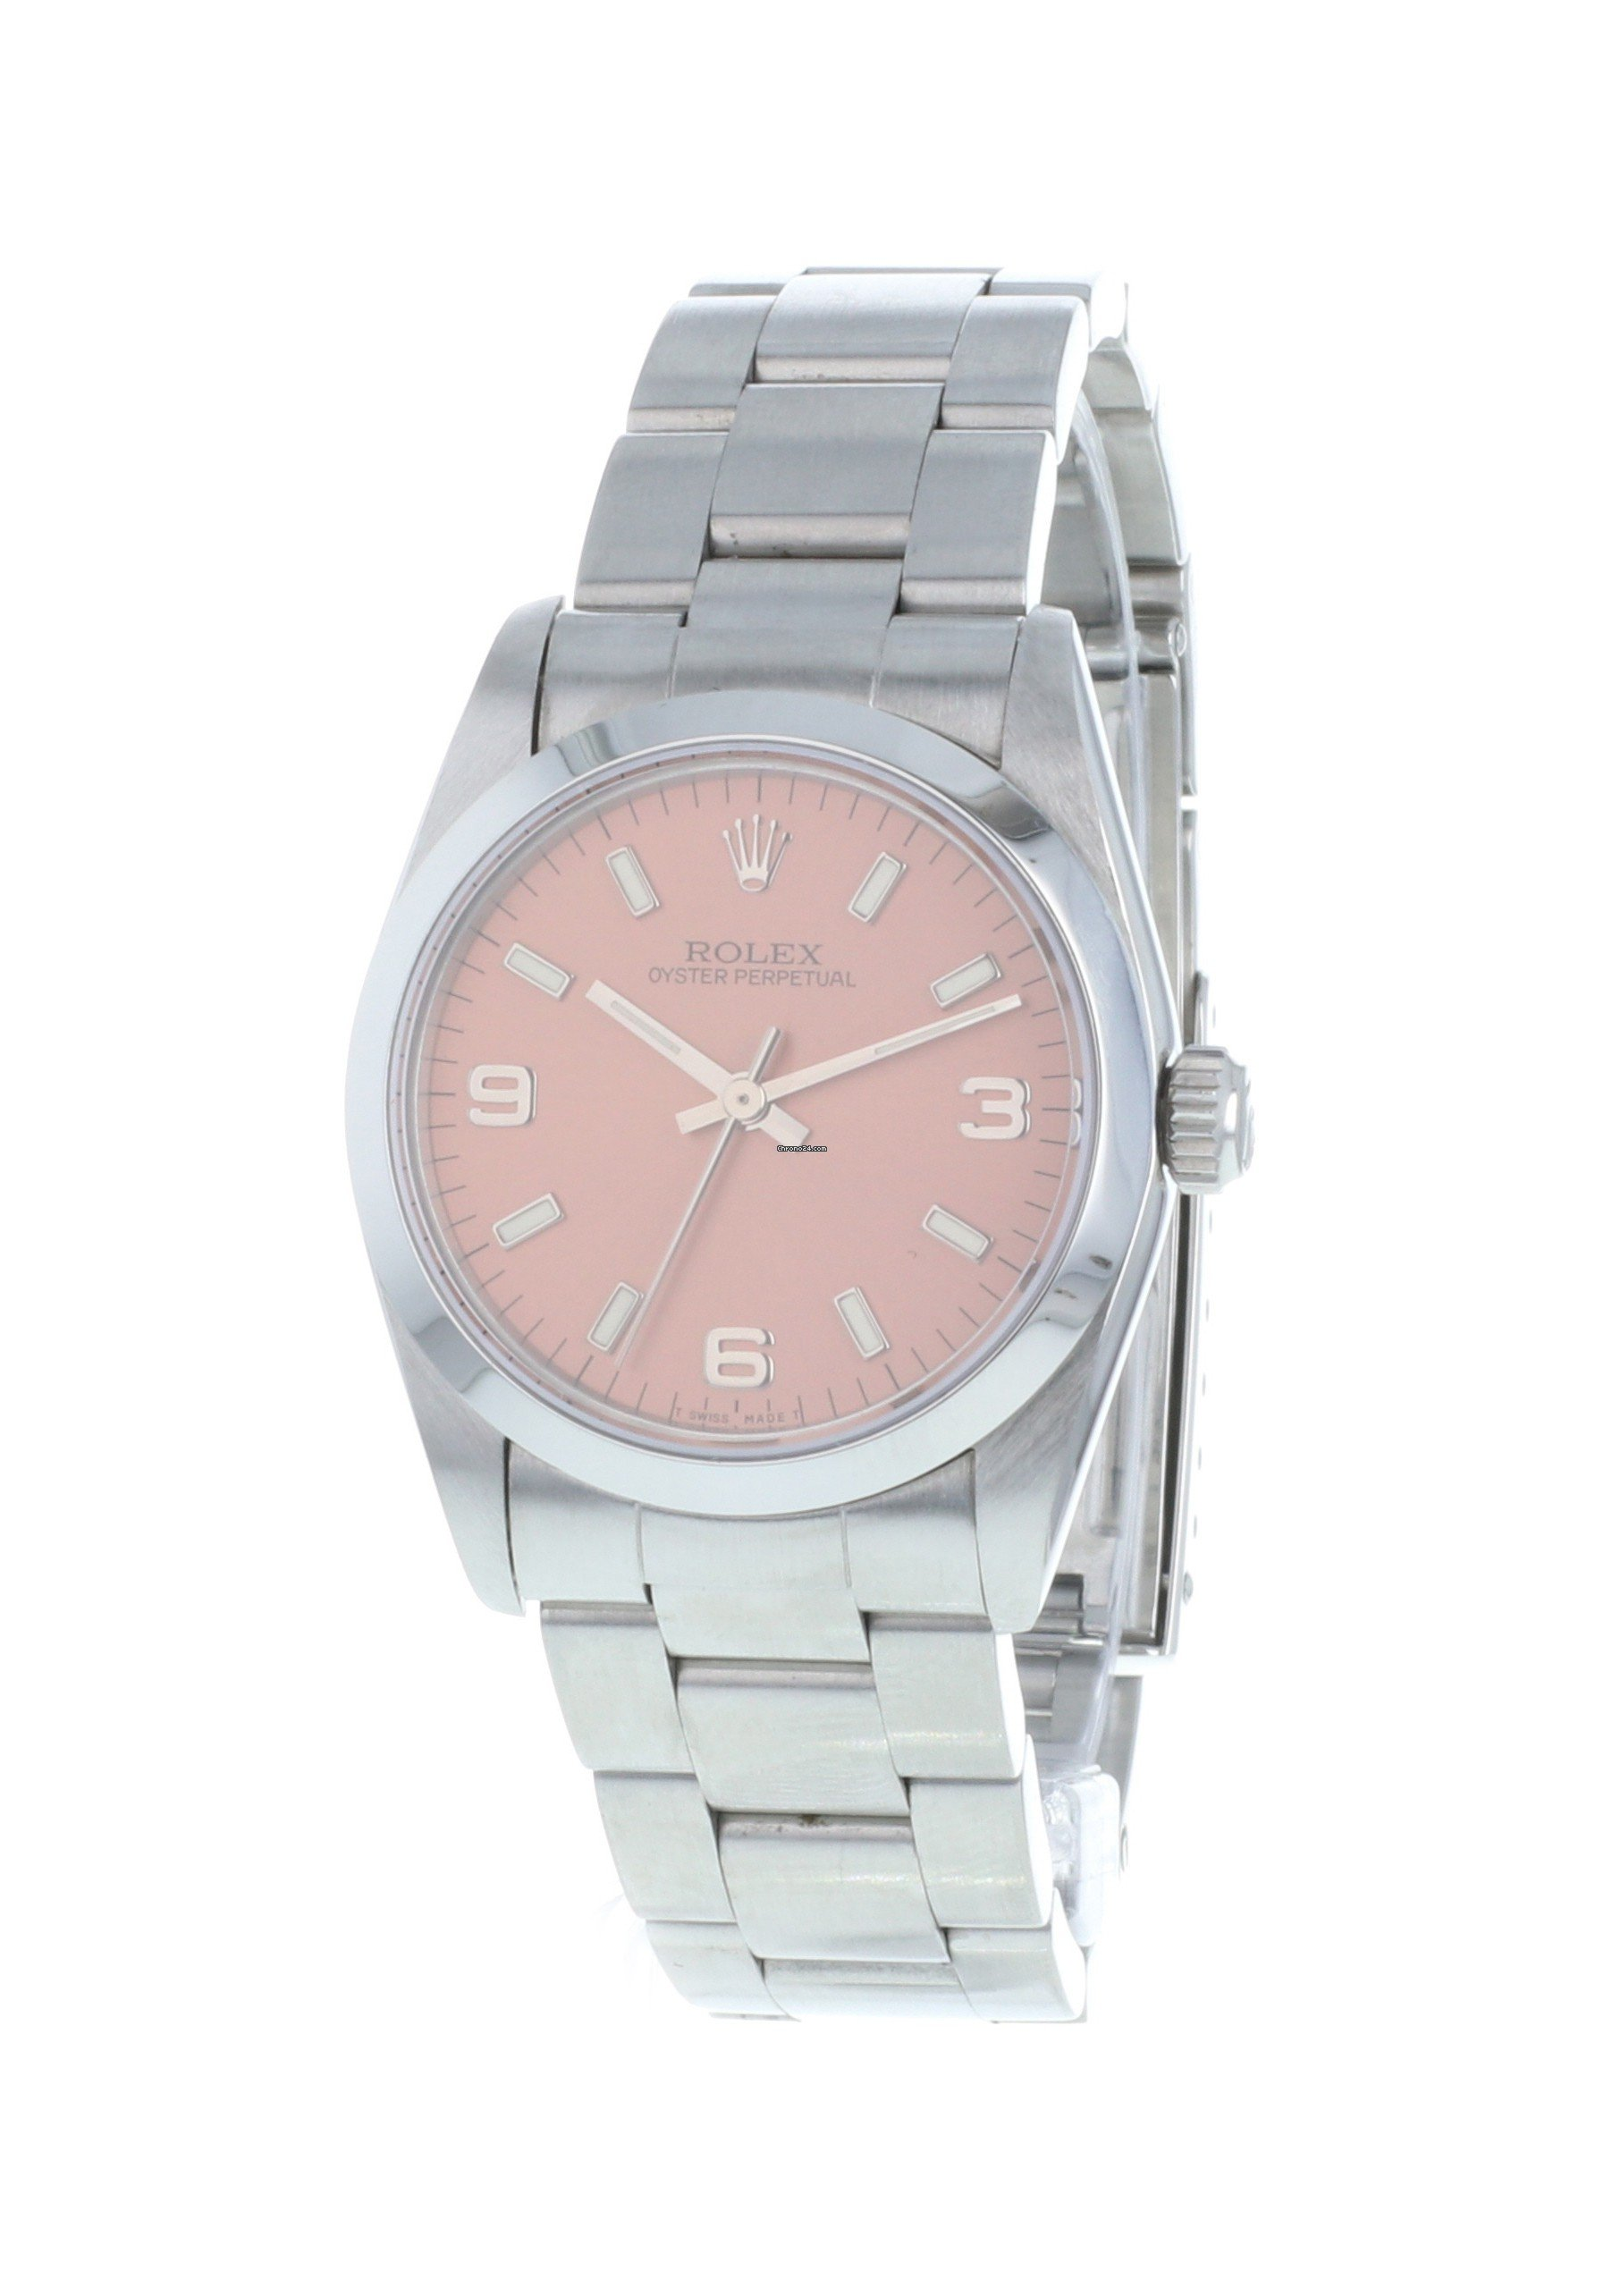 véritable rechercher l'original couleurs délicates Rolex Oyster Perpetual Medium for $4,489 for sale from a ...